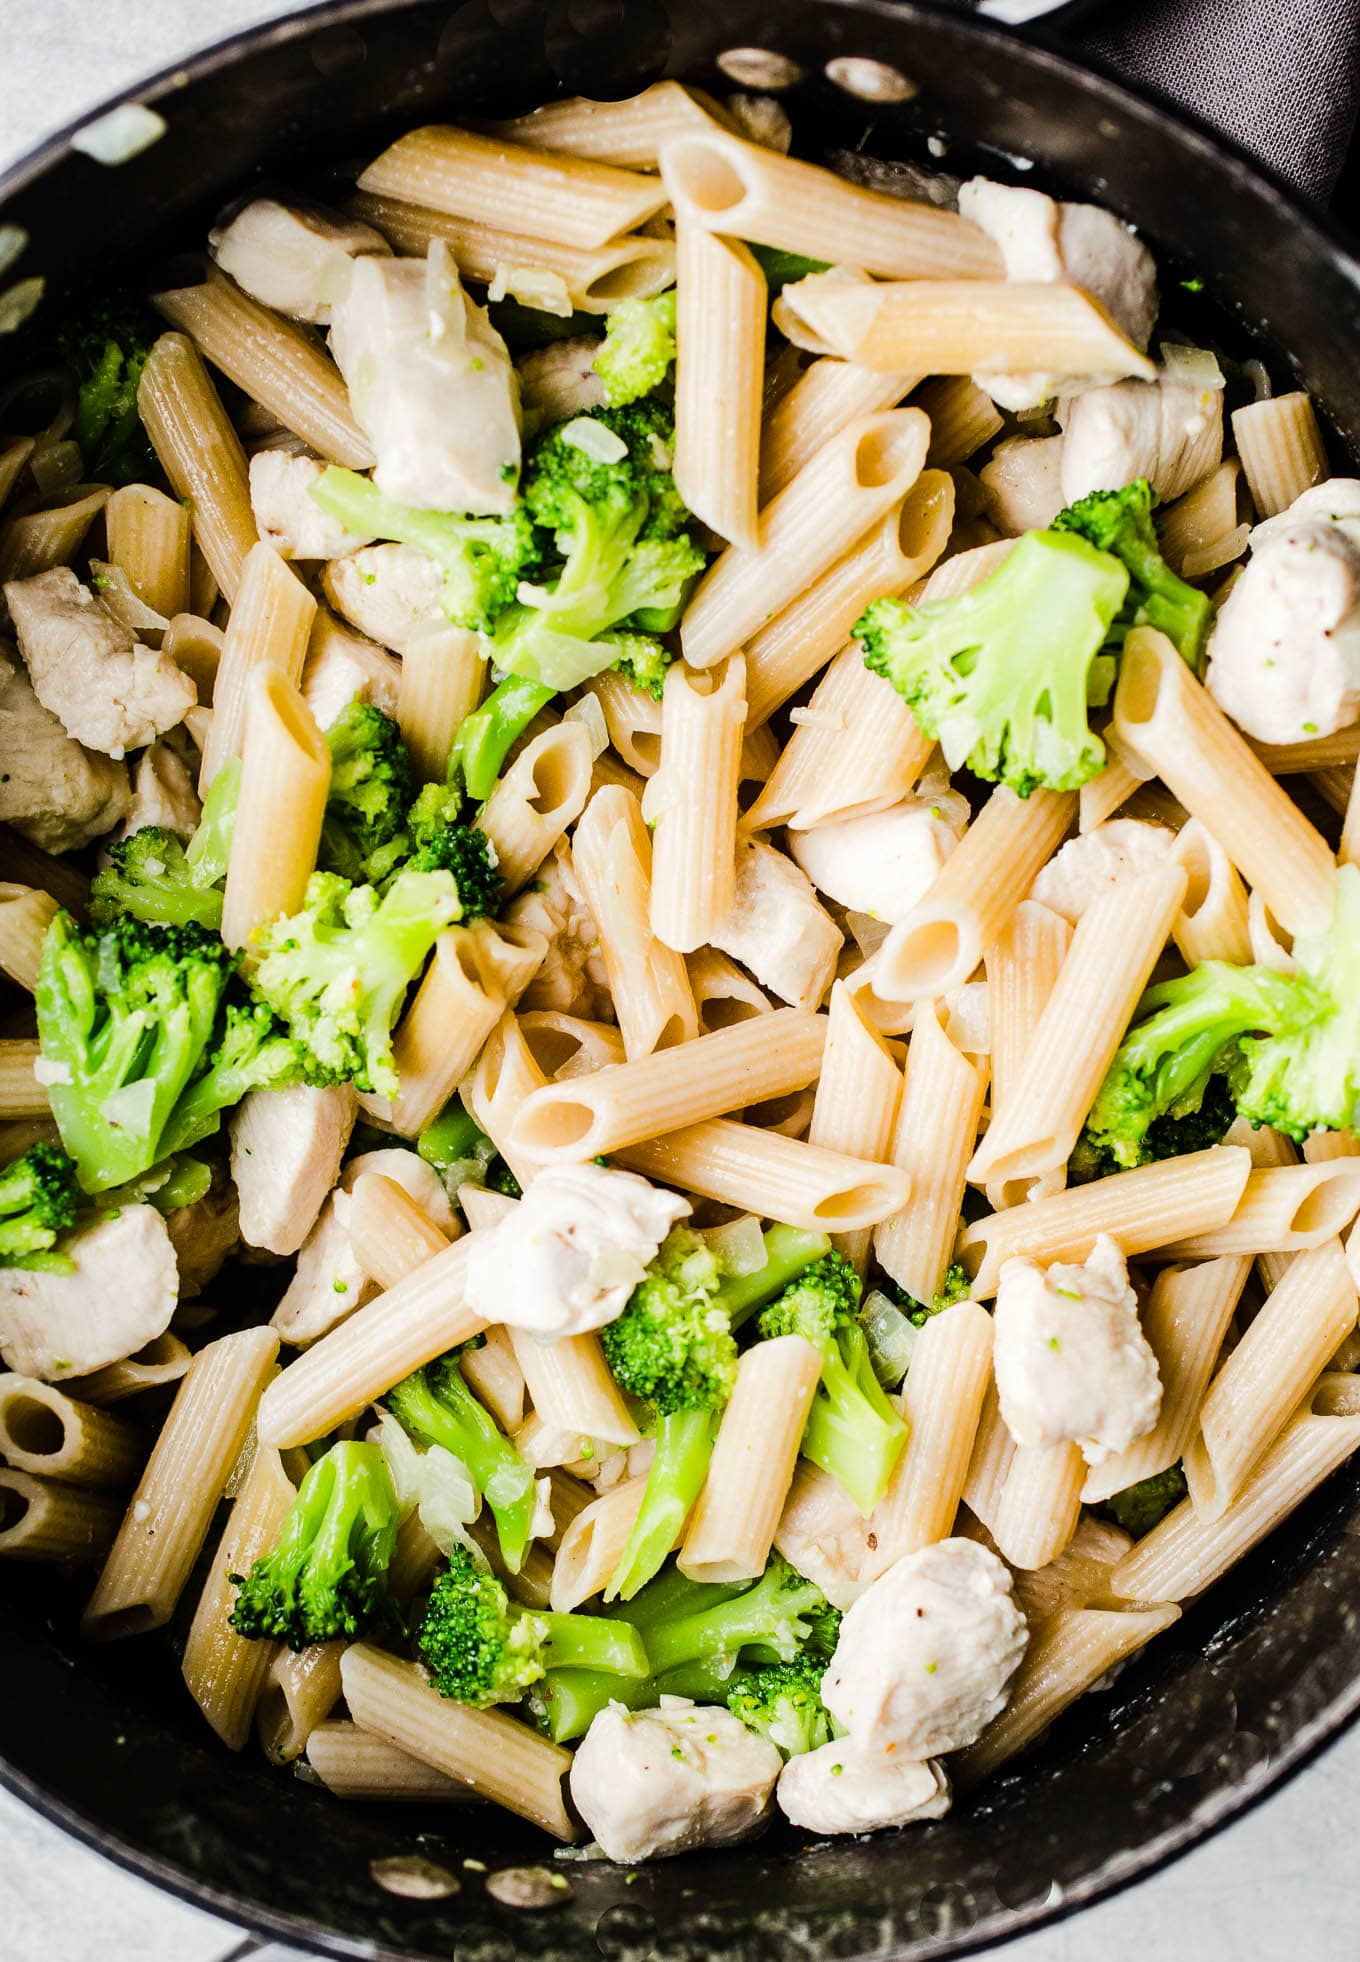 chicken and broccoli with pasta in pot